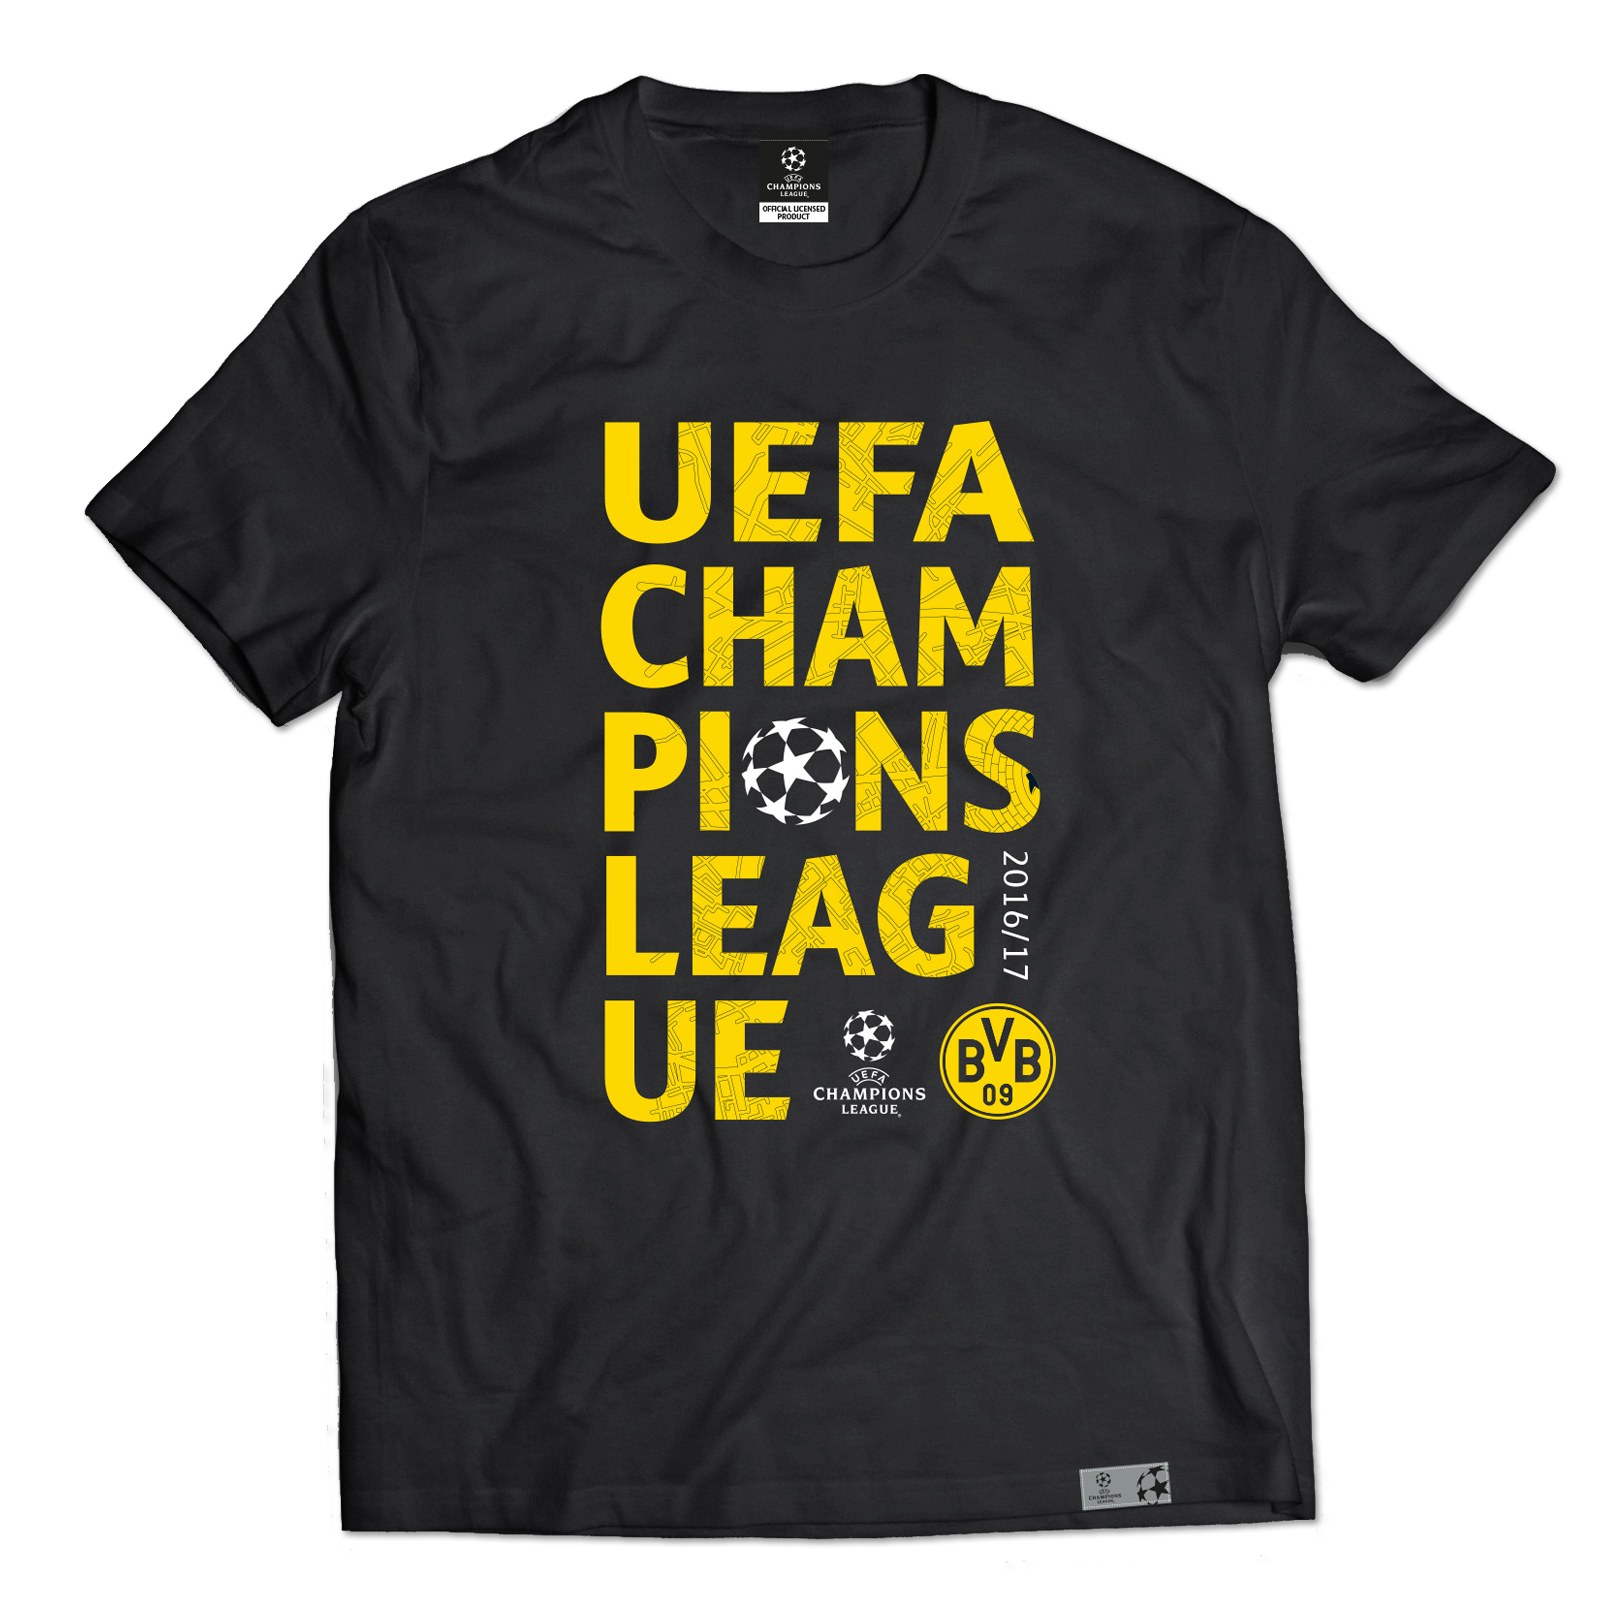 bvb t shirt zur uefa cl herren offizieller bvb online. Black Bedroom Furniture Sets. Home Design Ideas